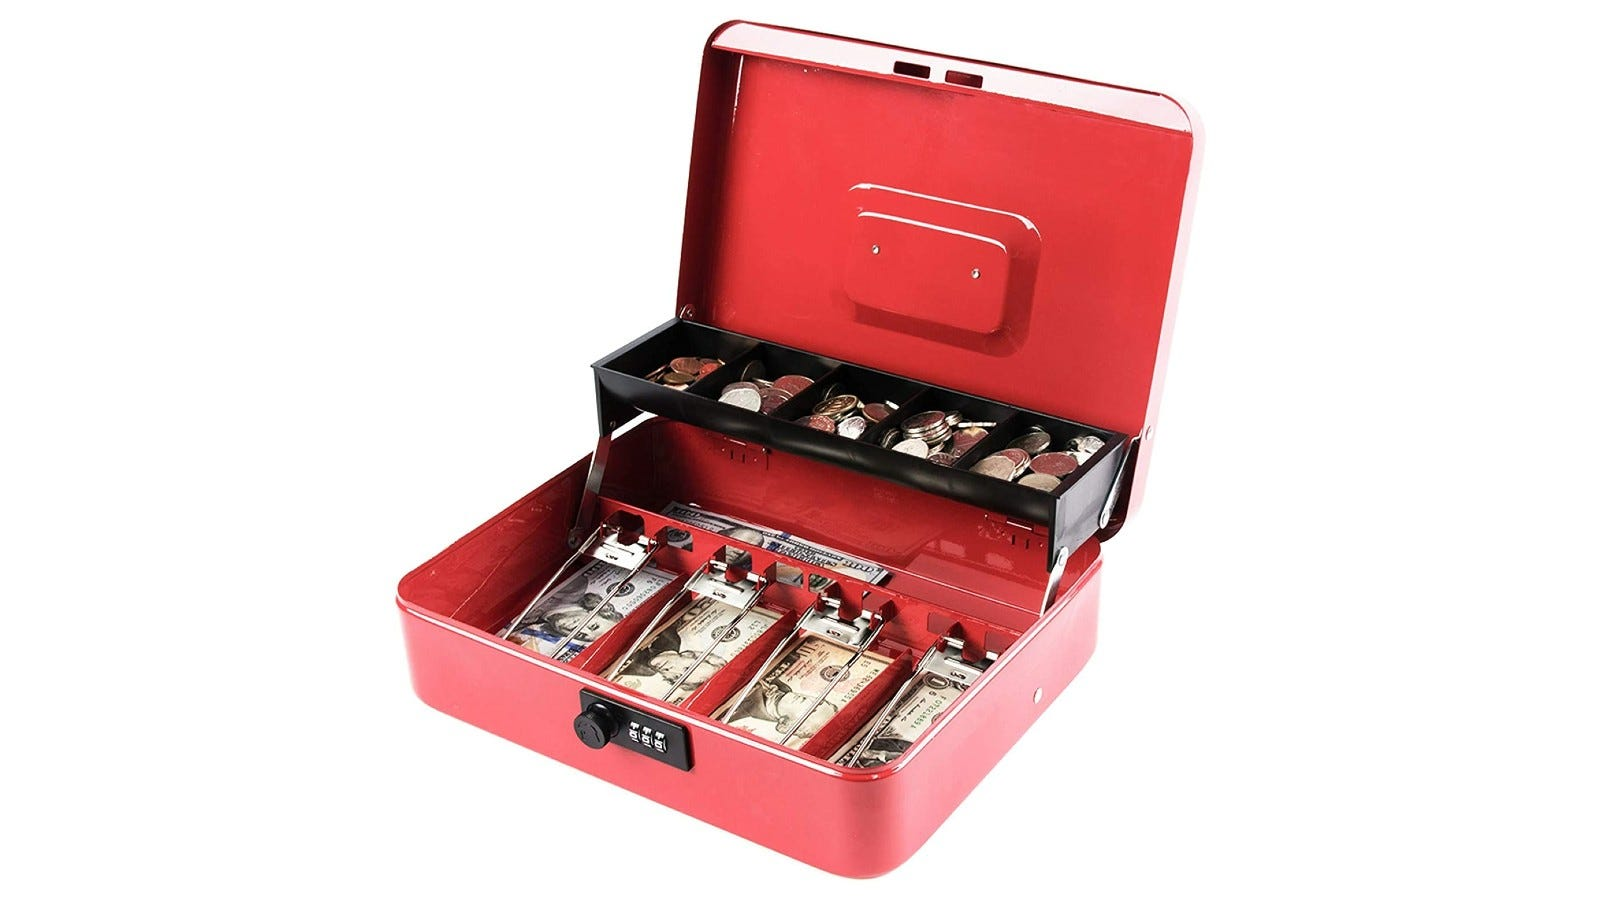 a red metal cash box with multiple interior compartments and money